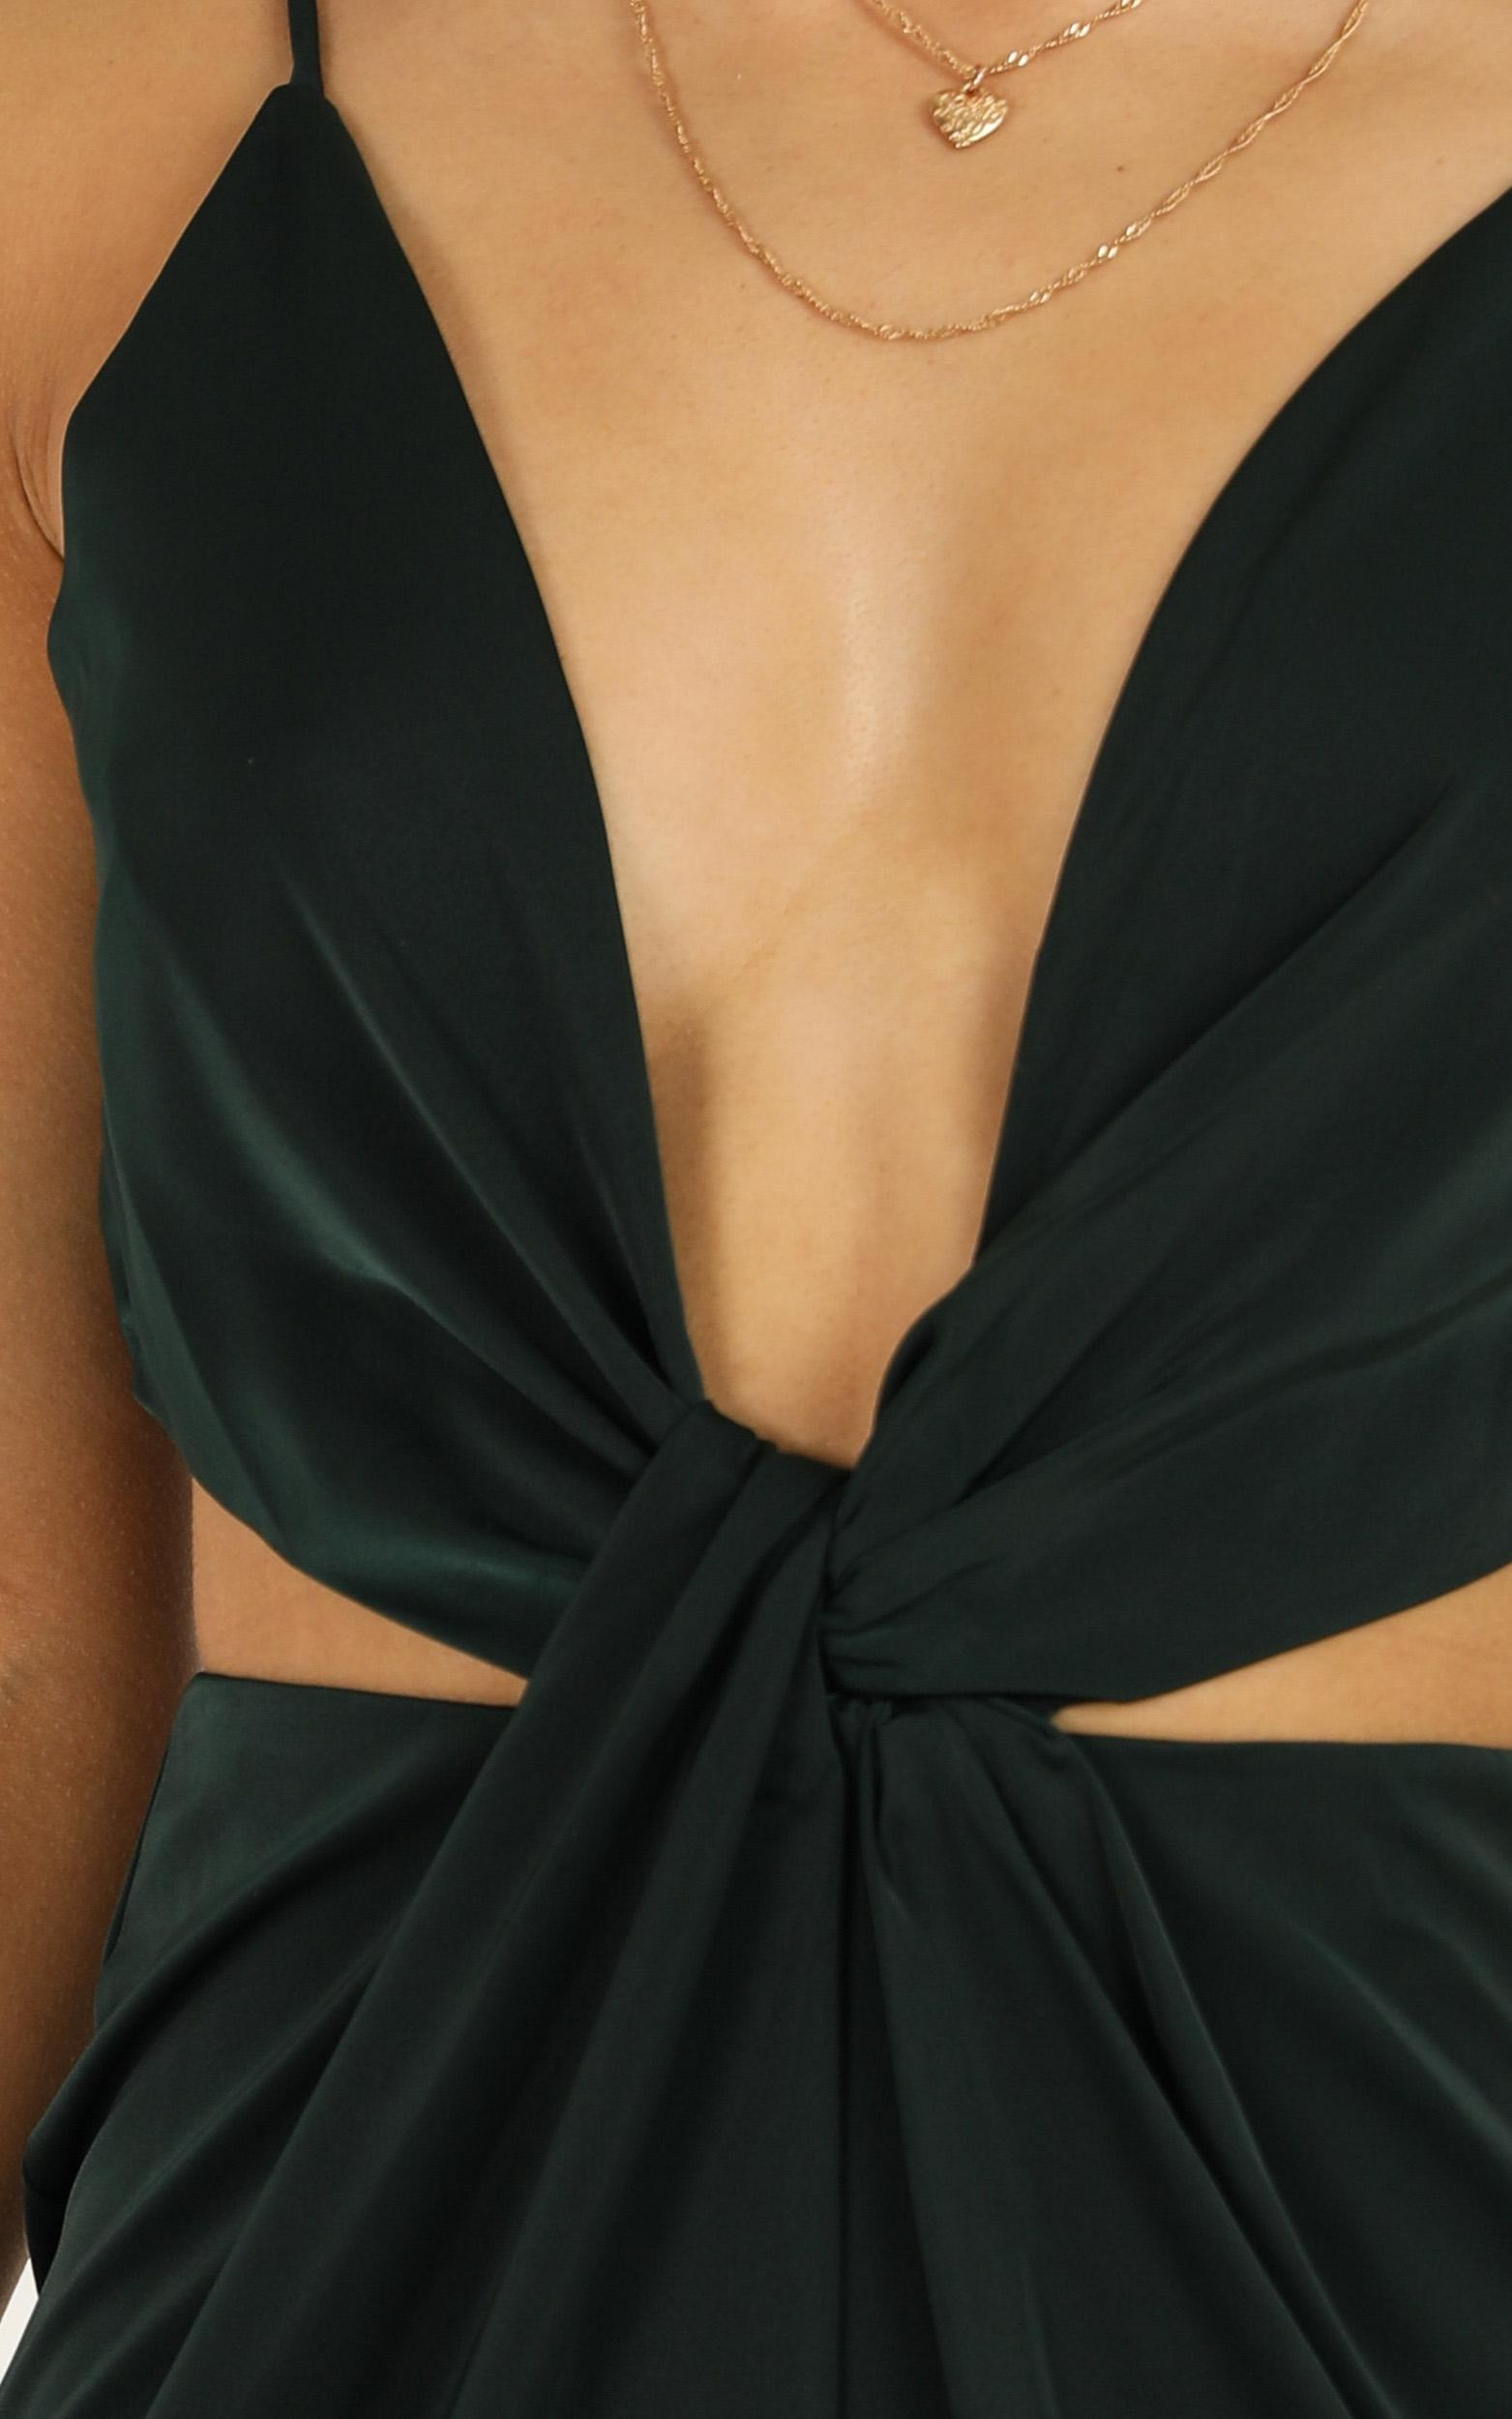 Simple Twist Of Fate Dress in emerald satin - 20 (XXXXL), Green, hi-res image number null